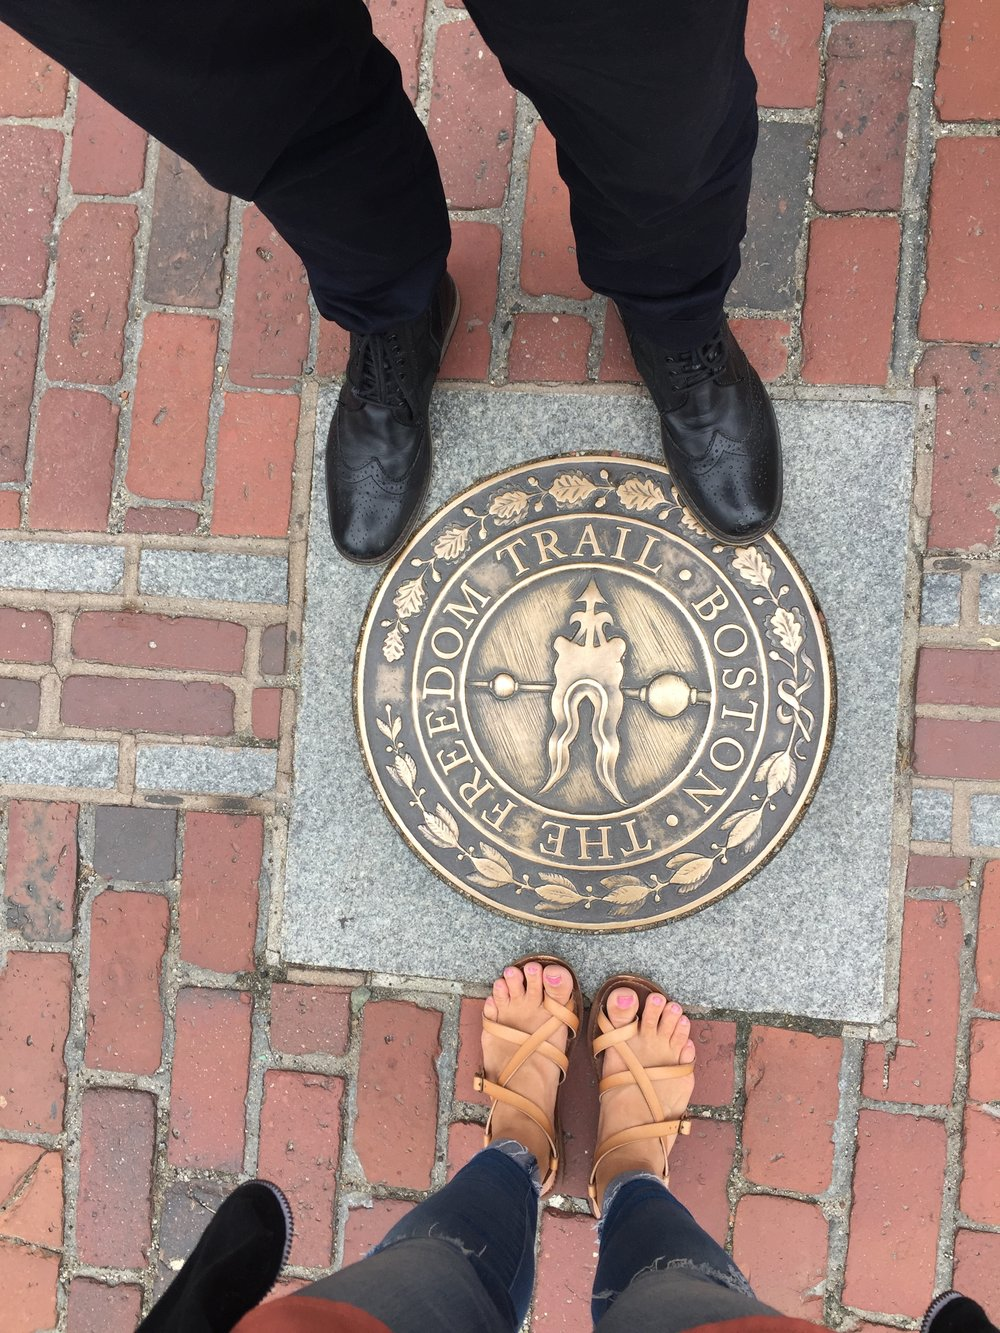 We didn't get to do the full freedom trail last time we were there, so I made that a priority this time. It is a must! Lots of walking, but totally worth it!